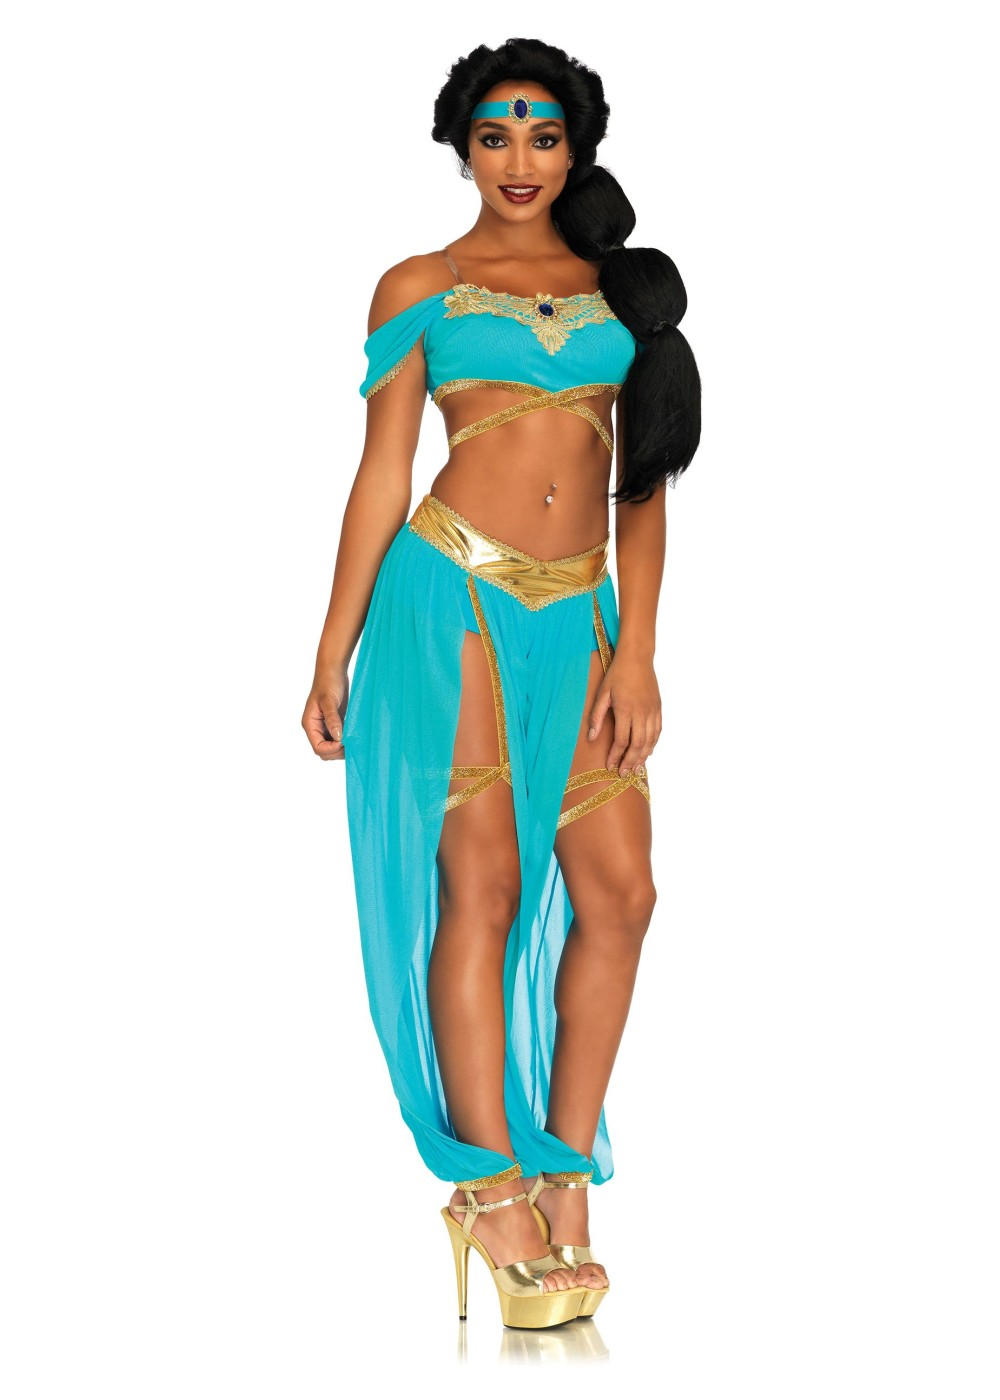 Arabian Princess Women Costume  sc 1 st  Wonder Costumes & Arabian Princess Women Costume - Sexy Costumes